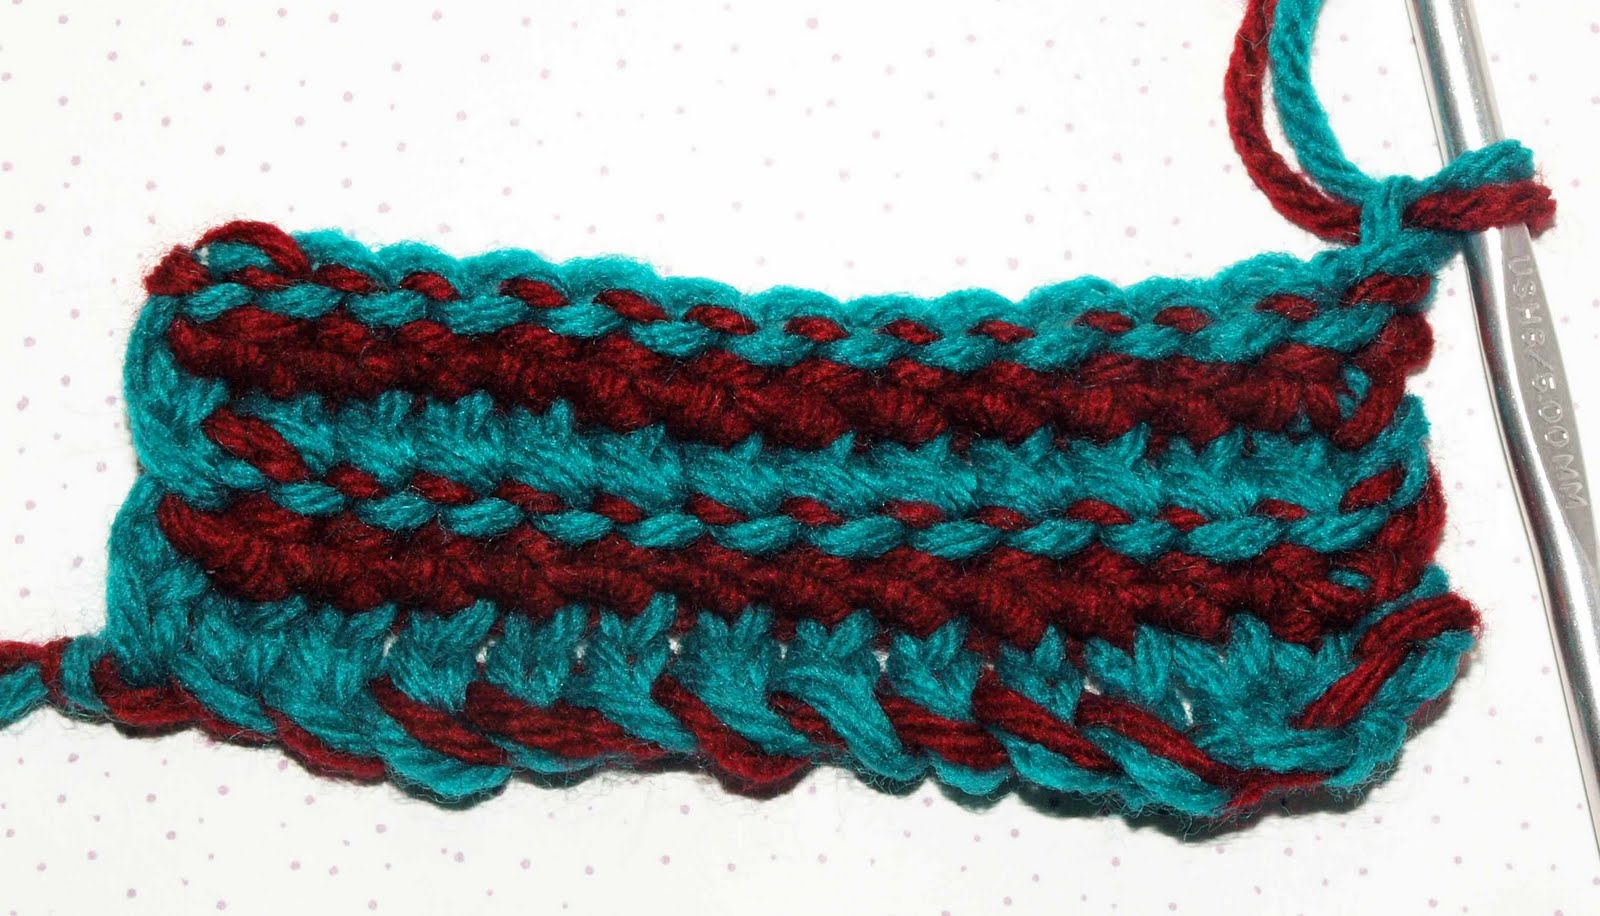 Crochet Stitches Esc : CrochetByKarin: Extended Single Crochet in Two Colors